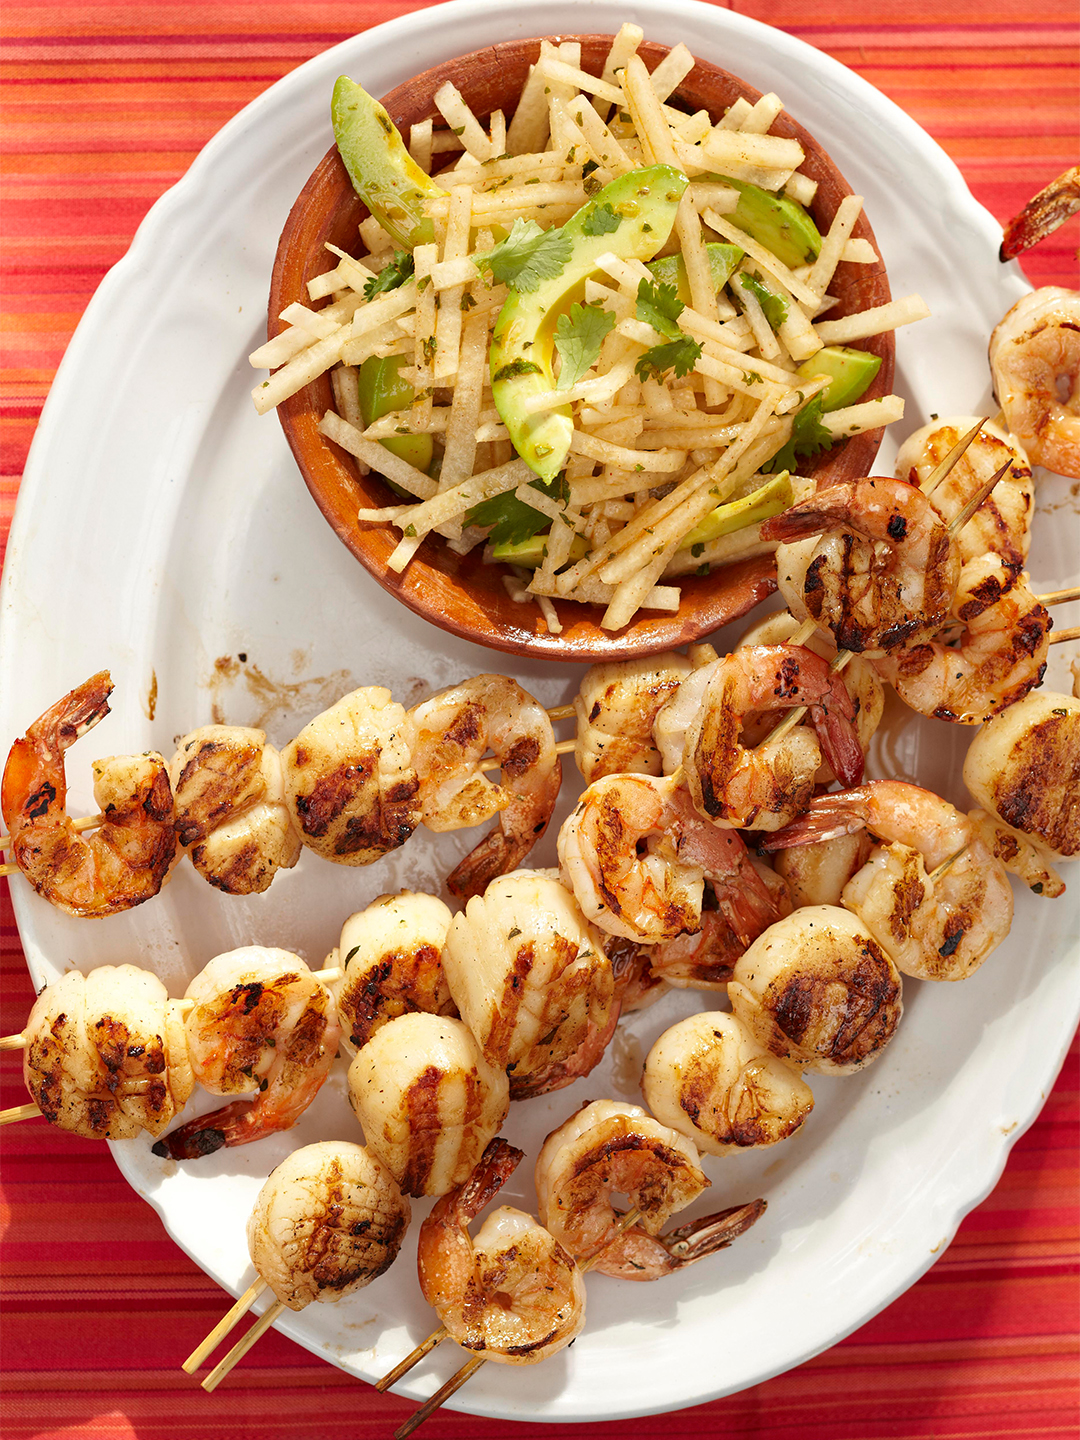 Grilled Drunken Shrimp and Scallop Skewers with avocado salad